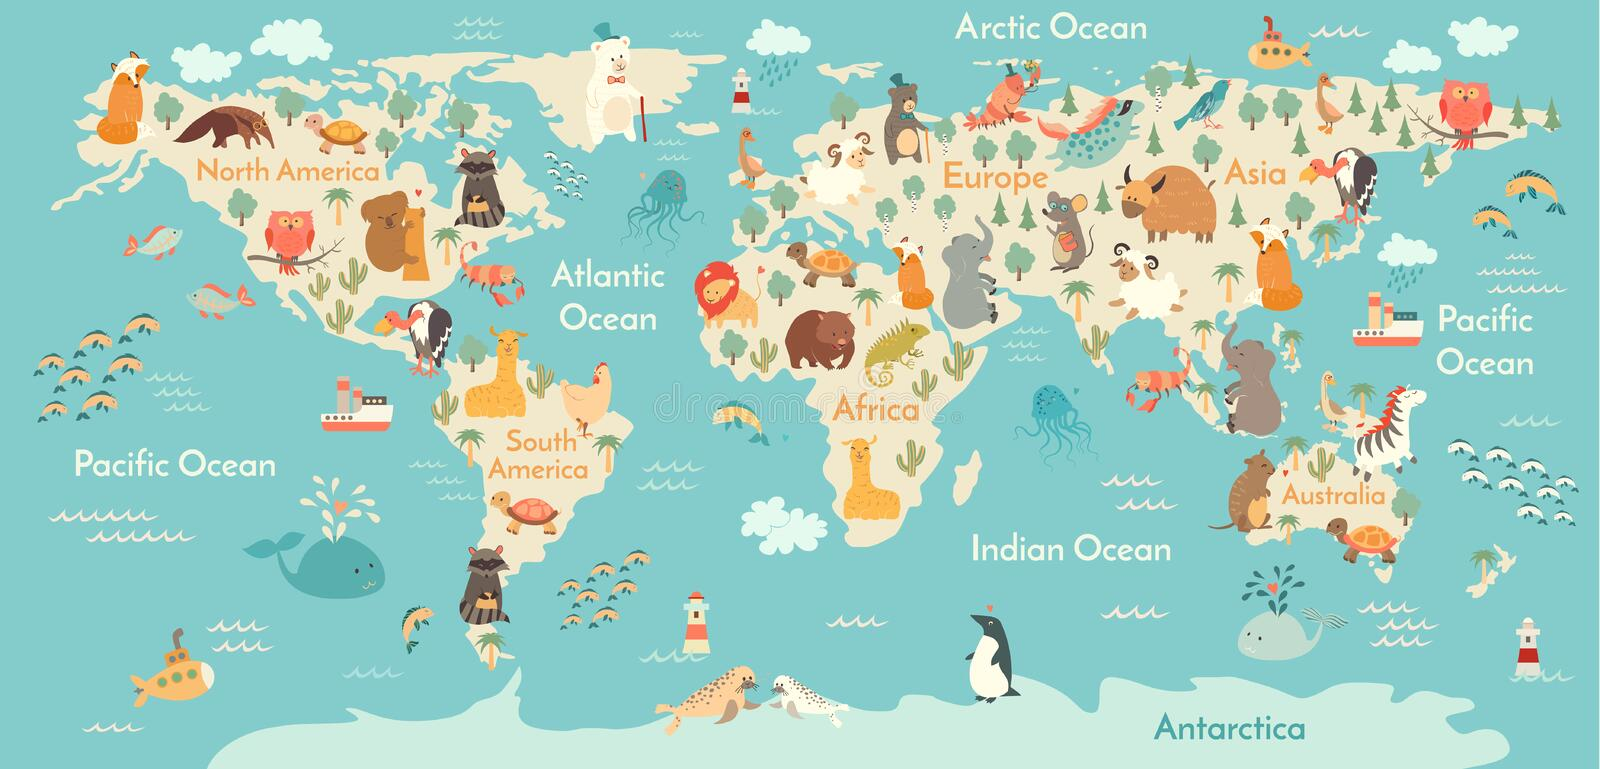 Animals world map stock vector illustration of cartoon 62370378 download animals world map stock vector illustration of cartoon 62370378 gumiabroncs Image collections